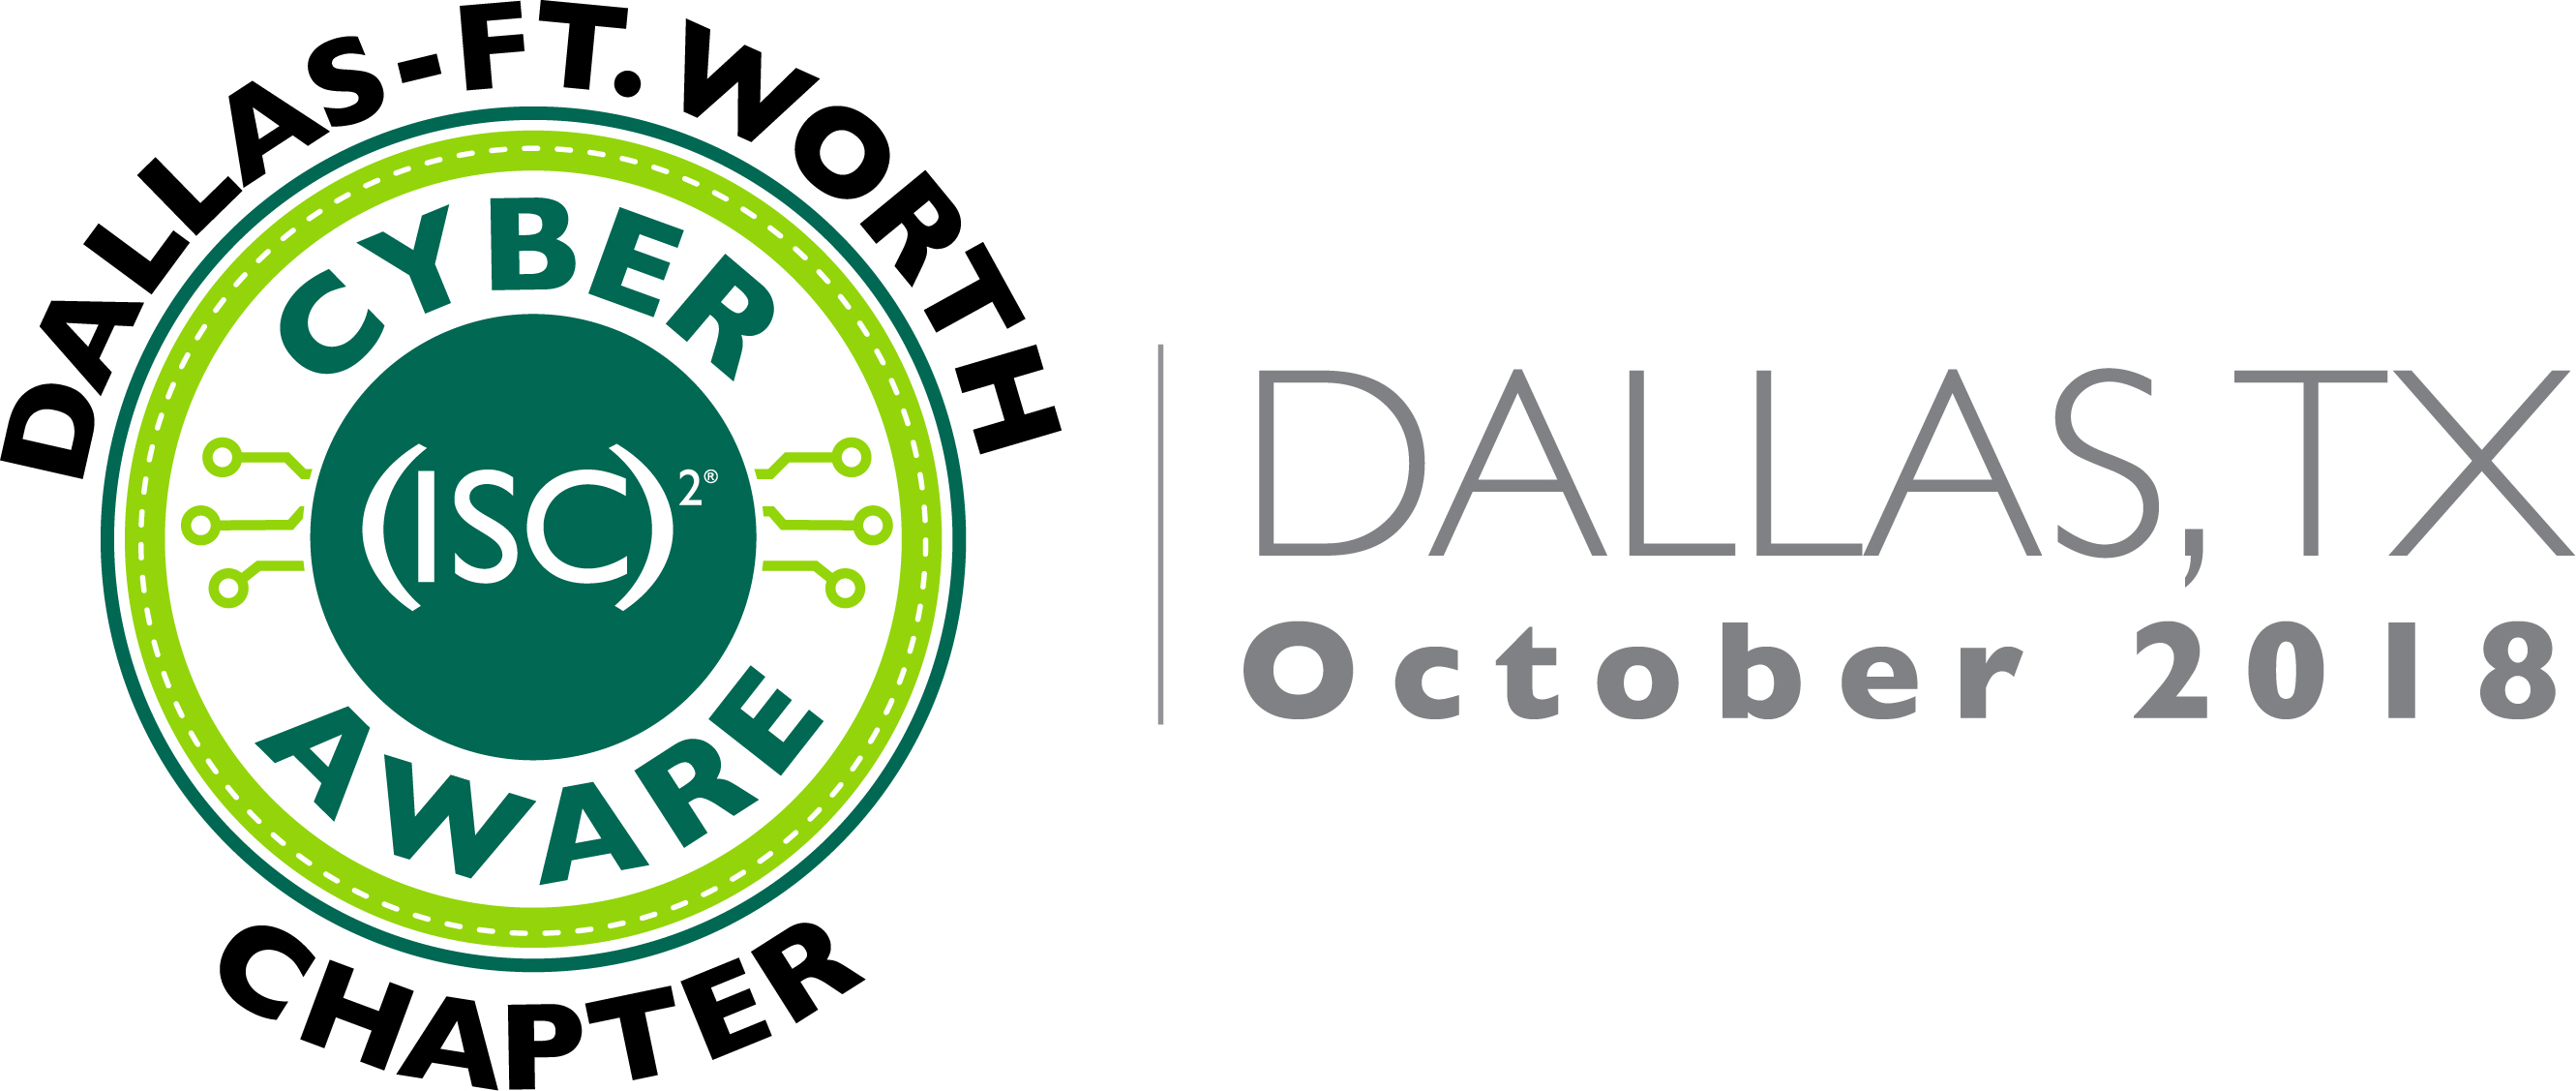 Dallas-FT Worth's primier information security event.